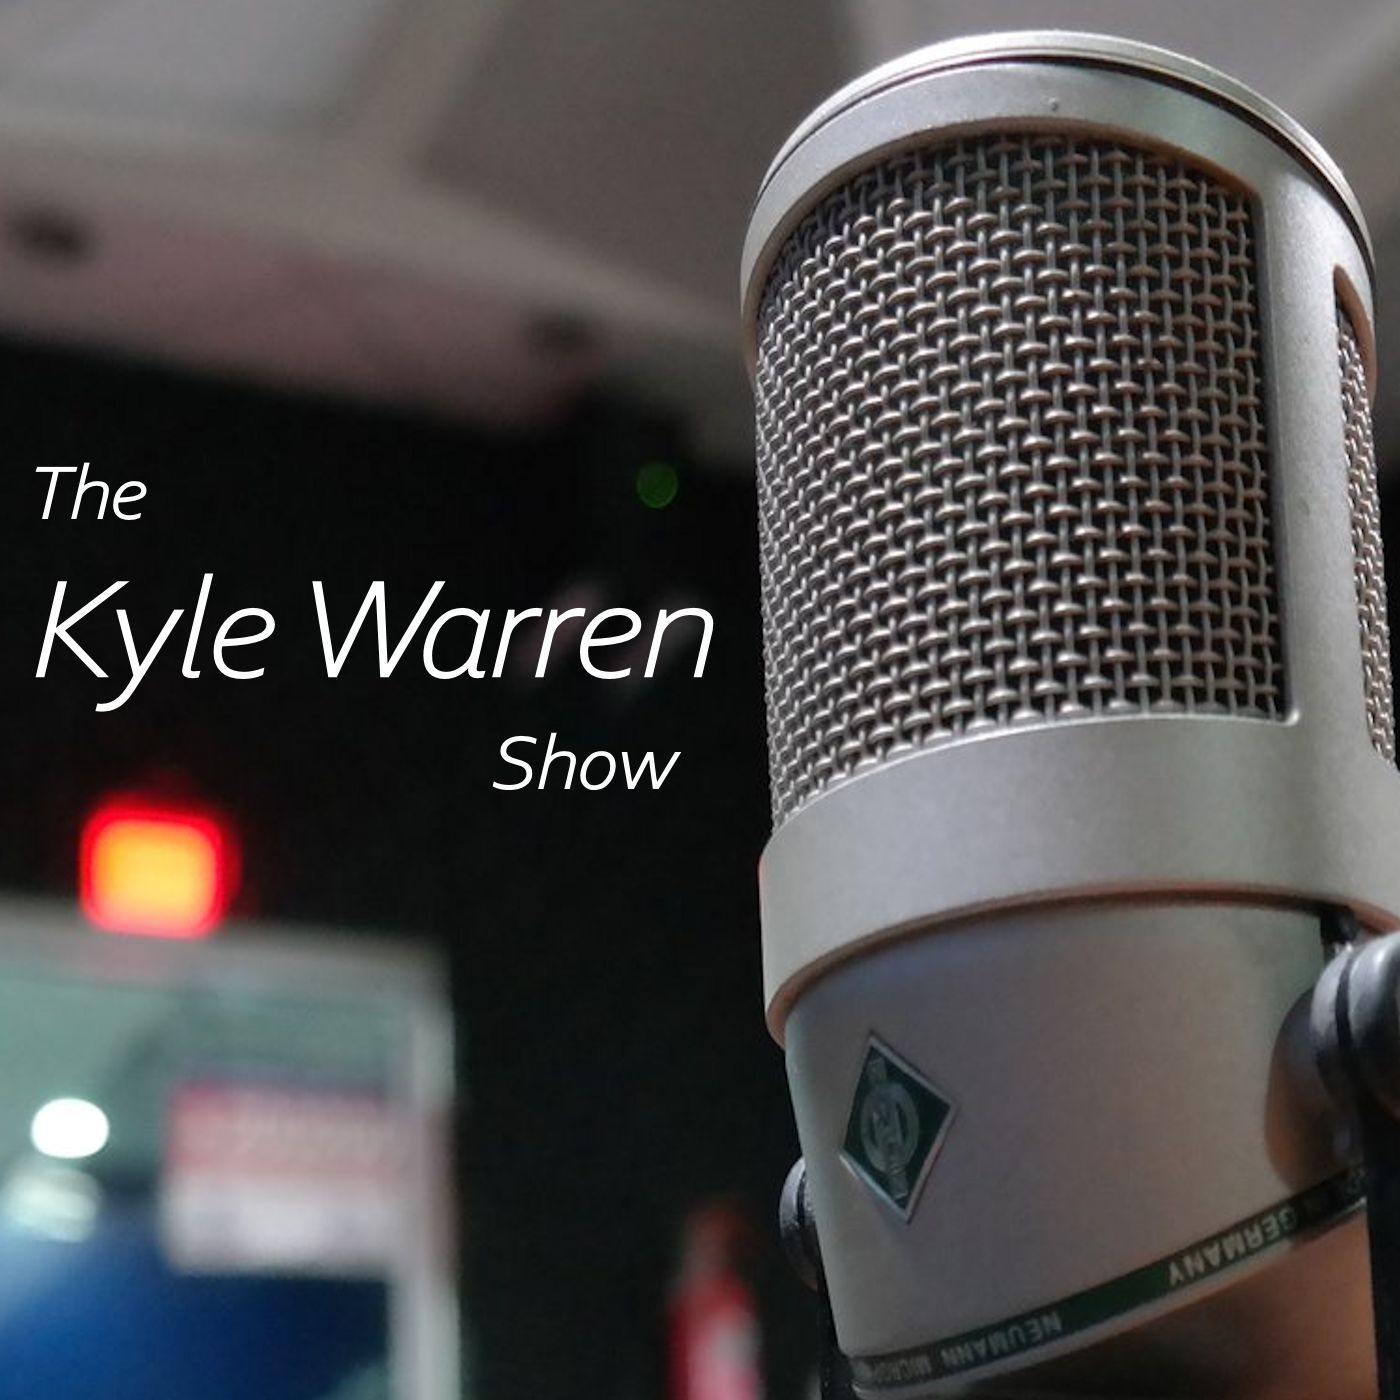 The Kyle Warren Show - The Fastest Hour In Talk Radio!